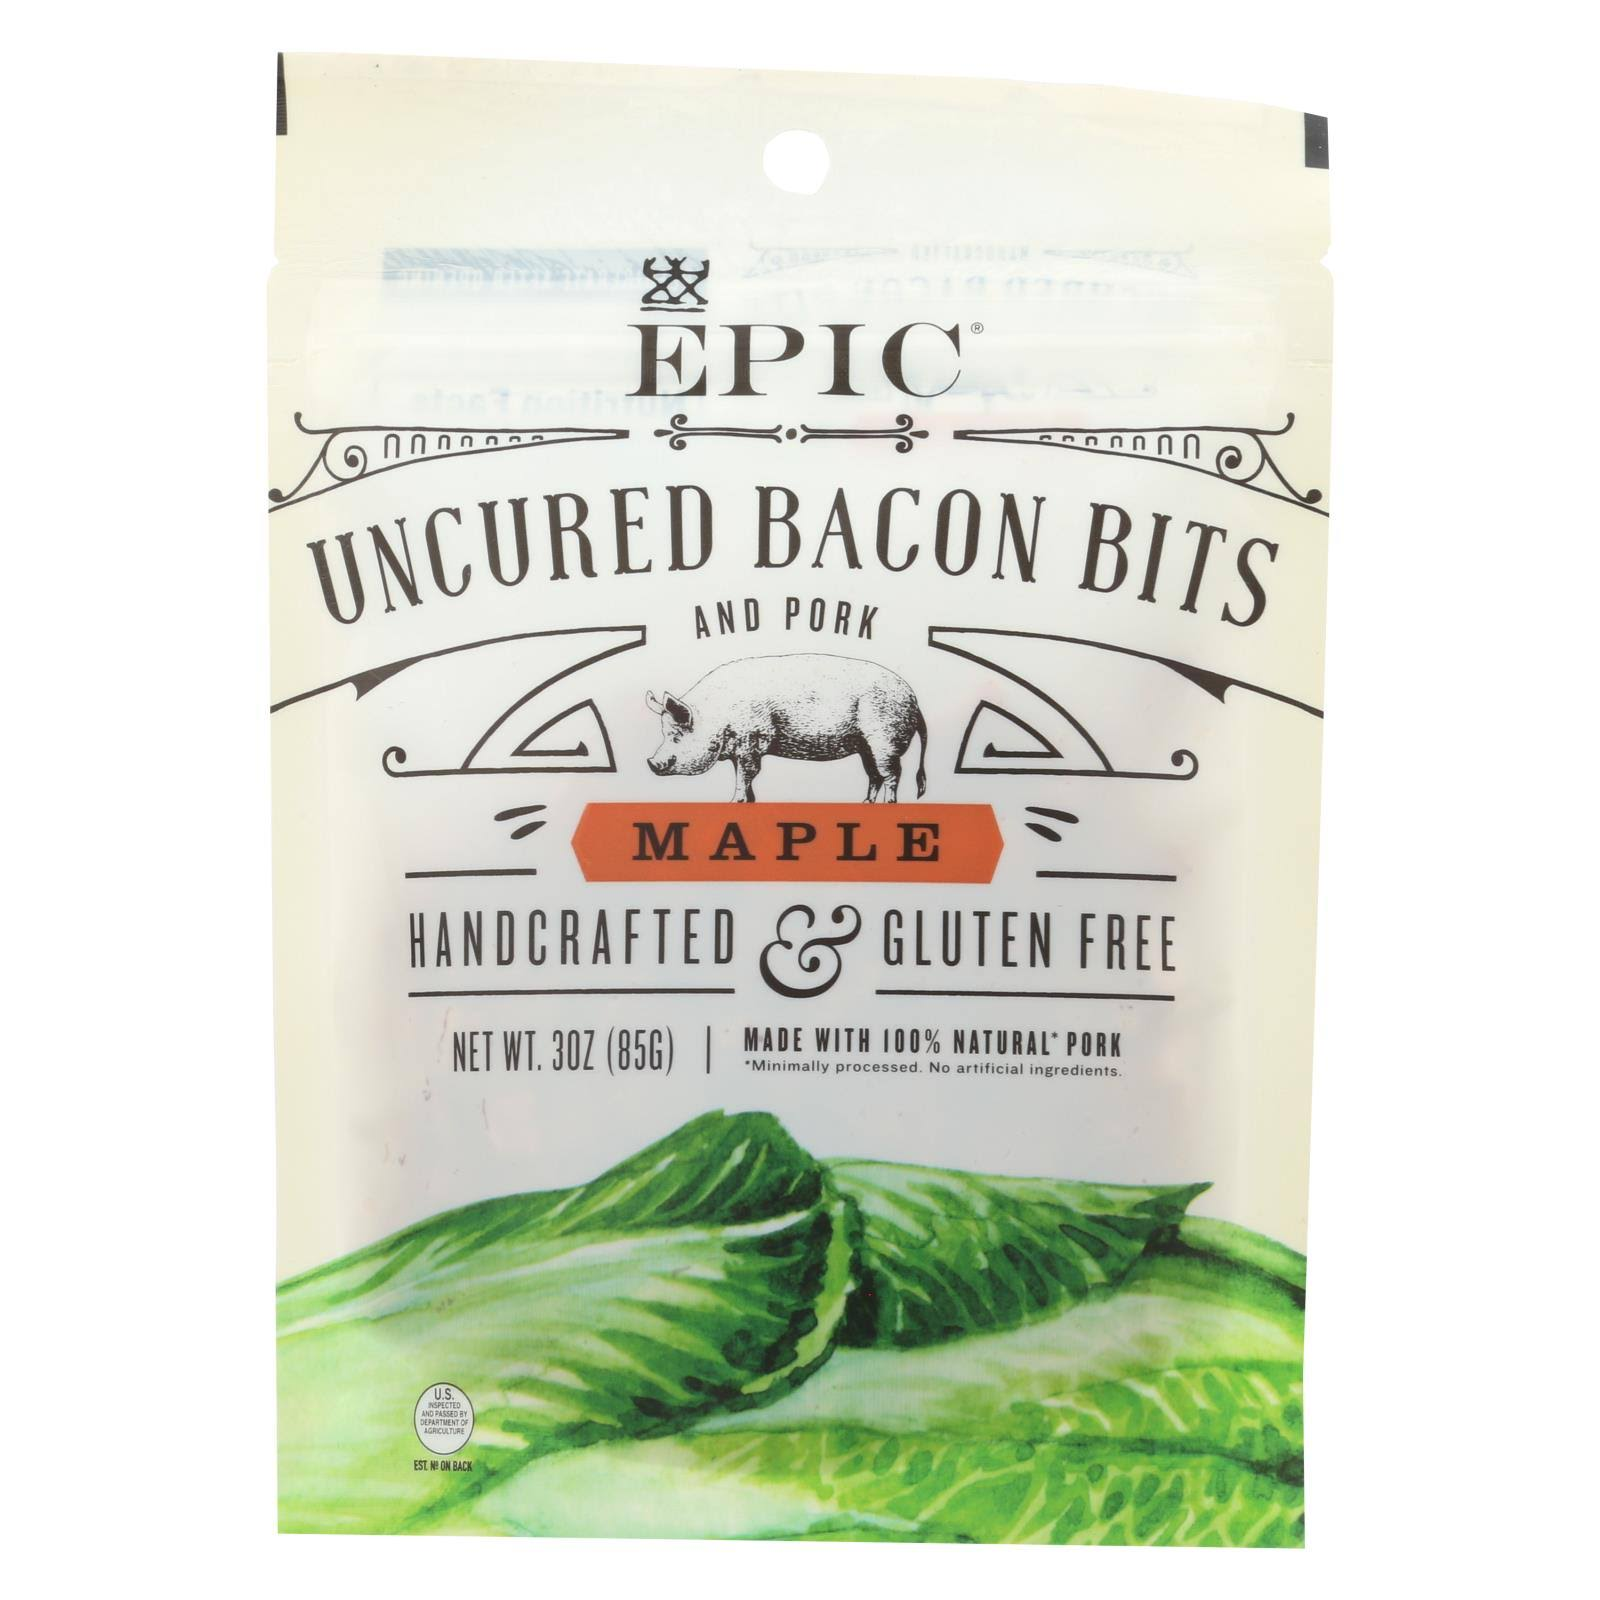 Epic, Uncured Bacon Bits Maple, 3 Ounce